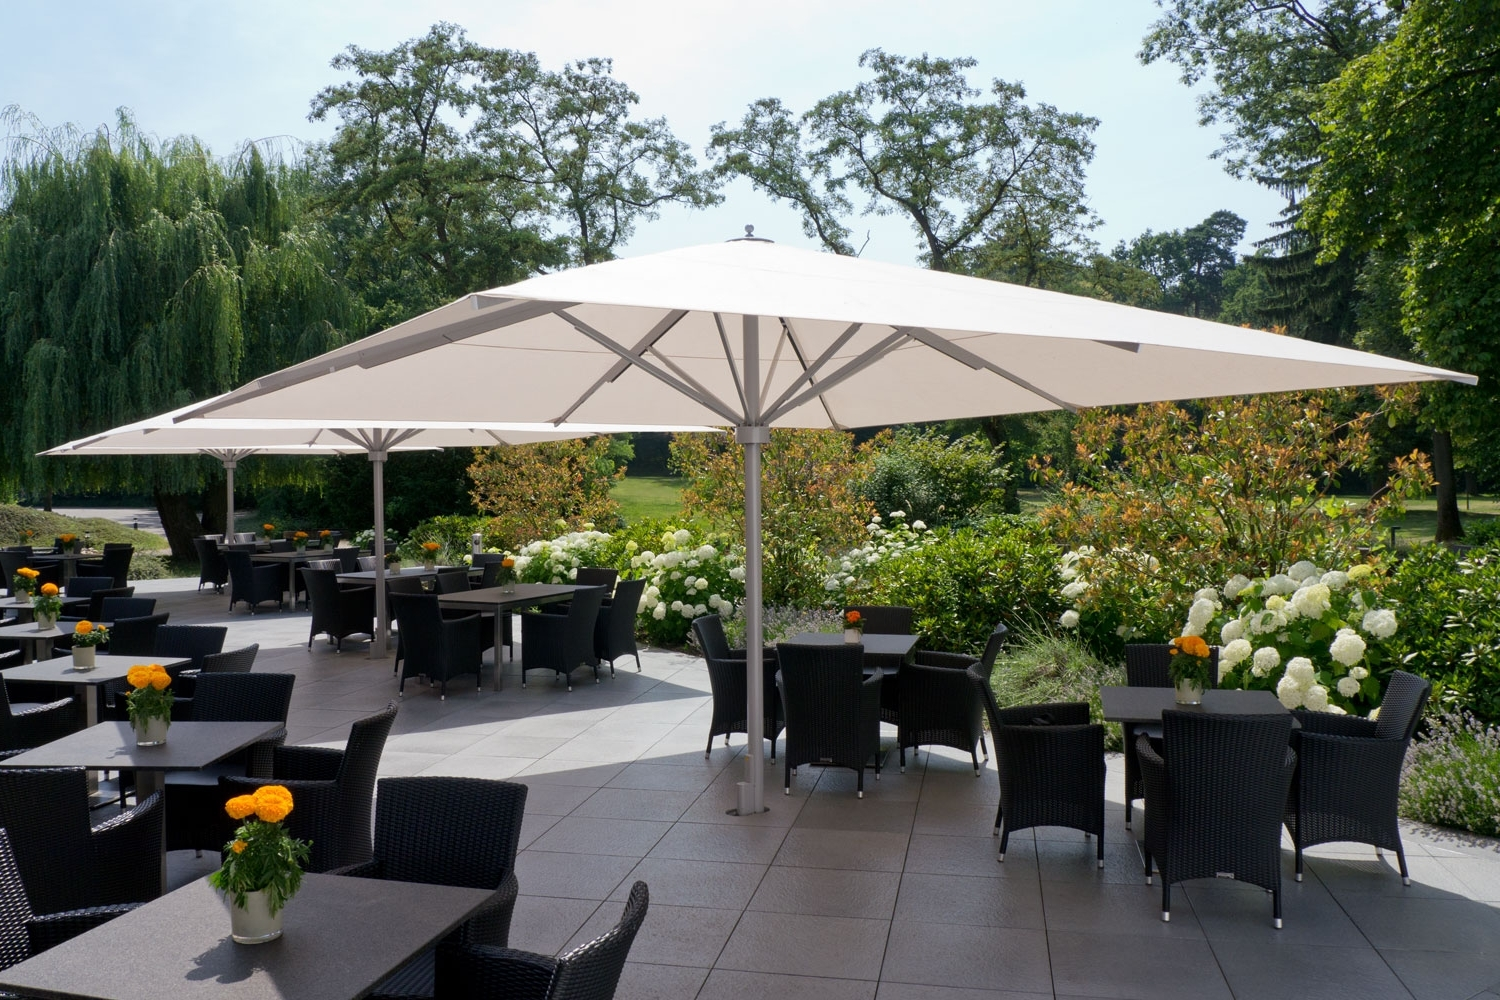 Caravita – Exclusive Commercial Patio Umbrellas Intended For Best And Newest European Patio Umbrellas (View 14 of 20)